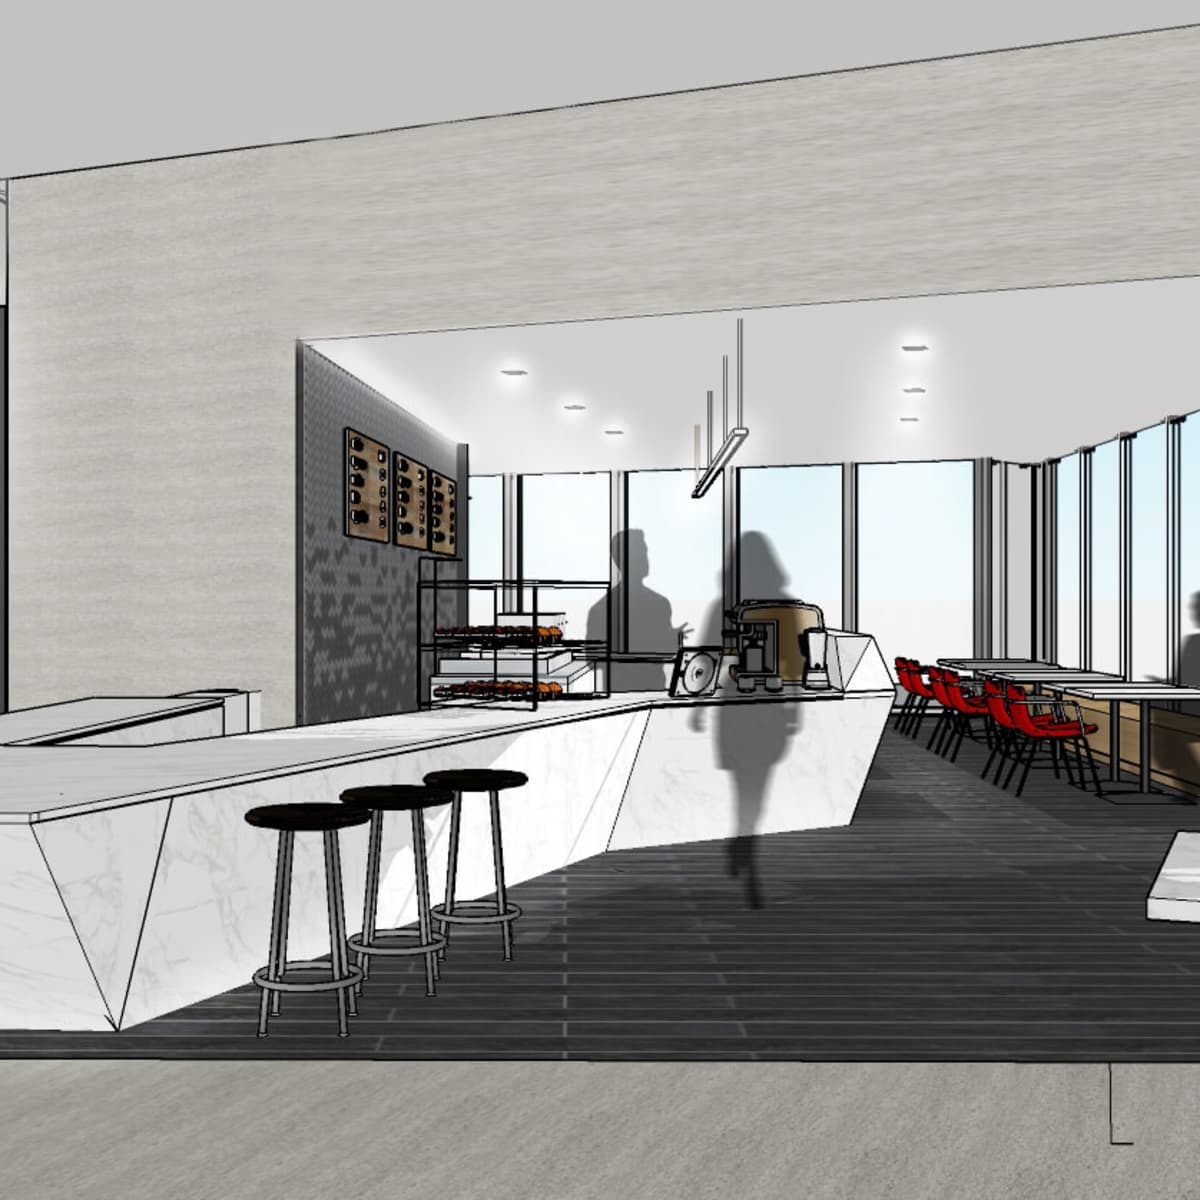 Houston, Prelude Coffee and Tea, Jan 2017, Prelude Coffee and Tea interior rendering